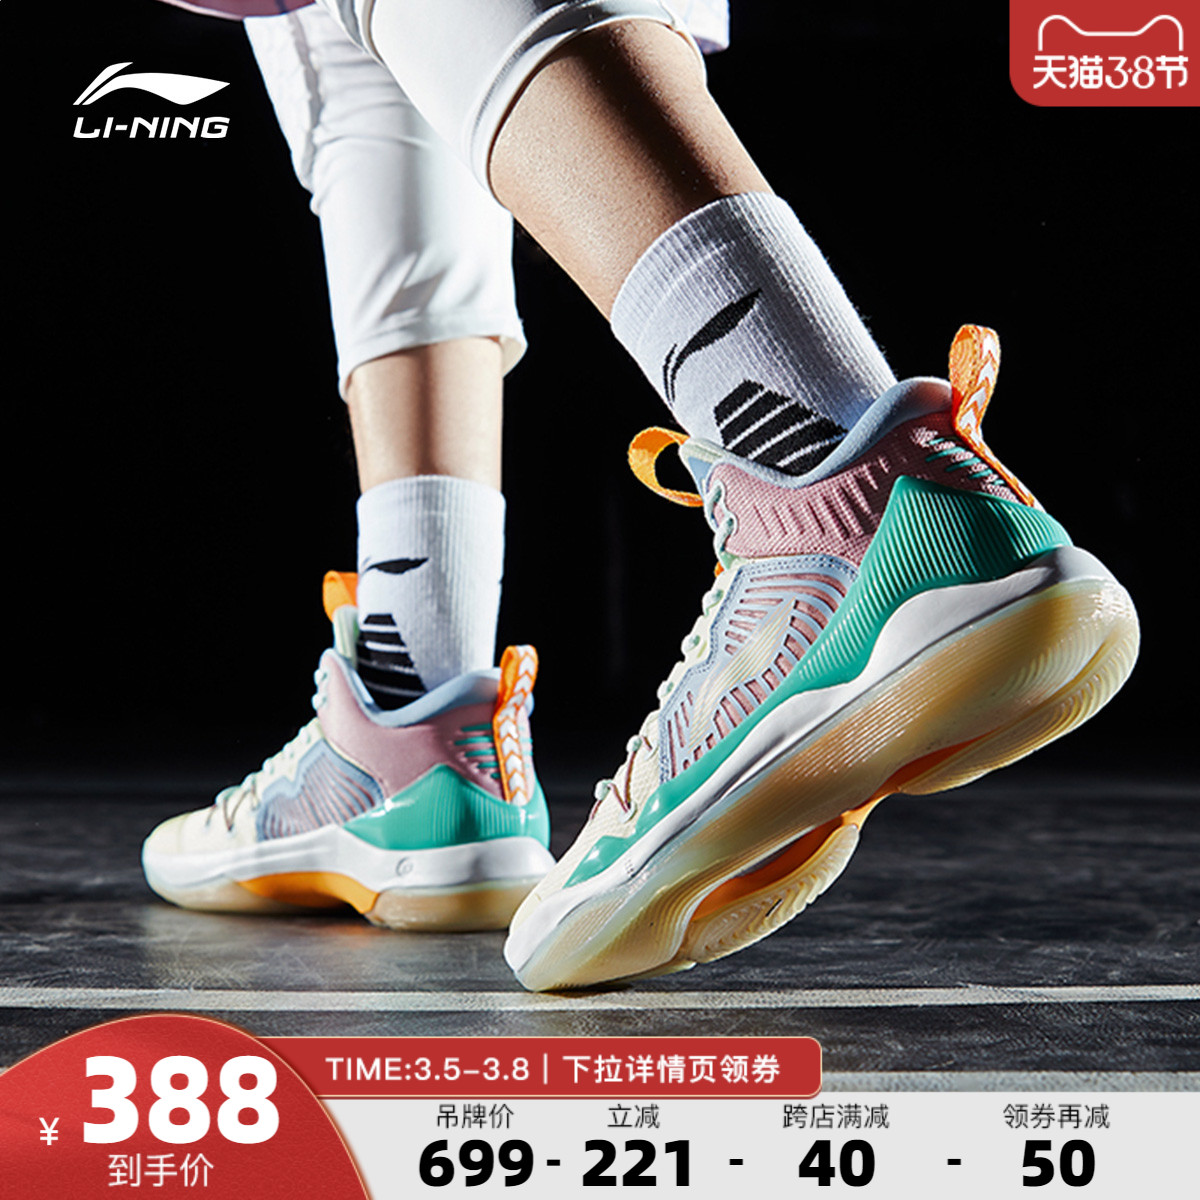 Li Ning basketball shoes sharp edge in the men's shoes flagship official website shock absorption sneakers wear-resistant actual men's shoes sports shoes